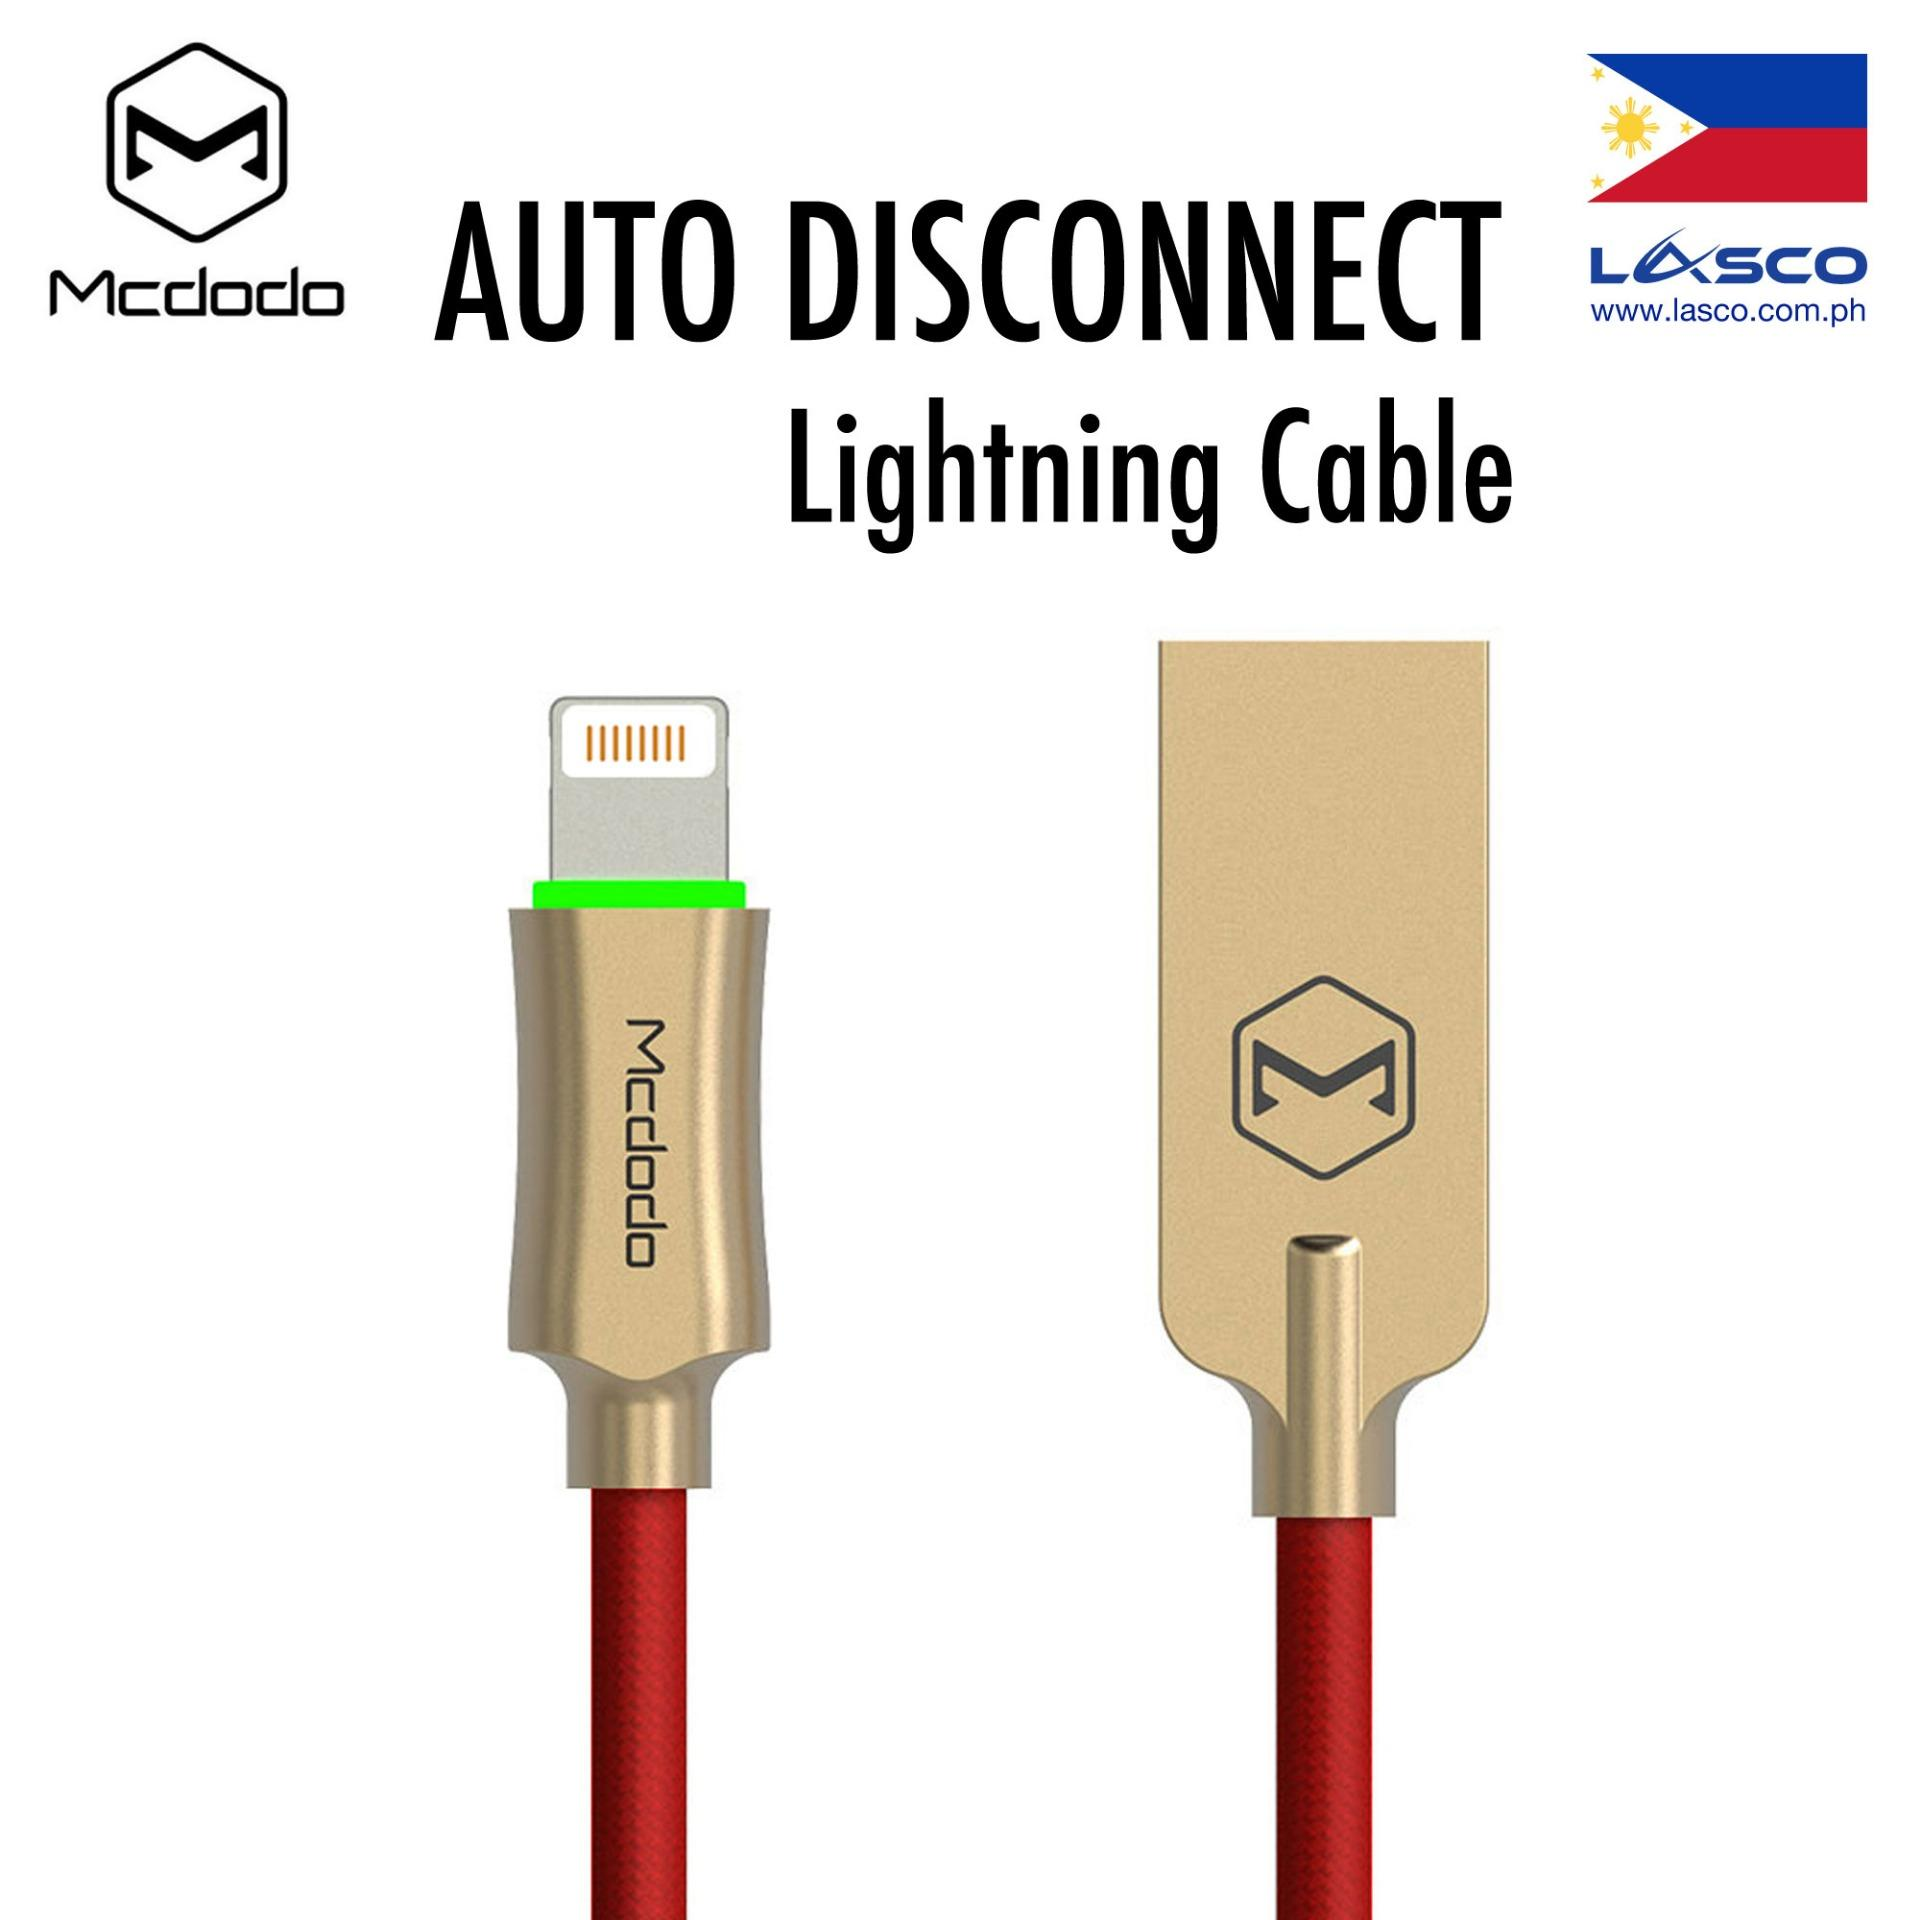 Mcdodo Philippines 1.8 meters High Quality Lightning Data Cable for any iPhone model X XS Max